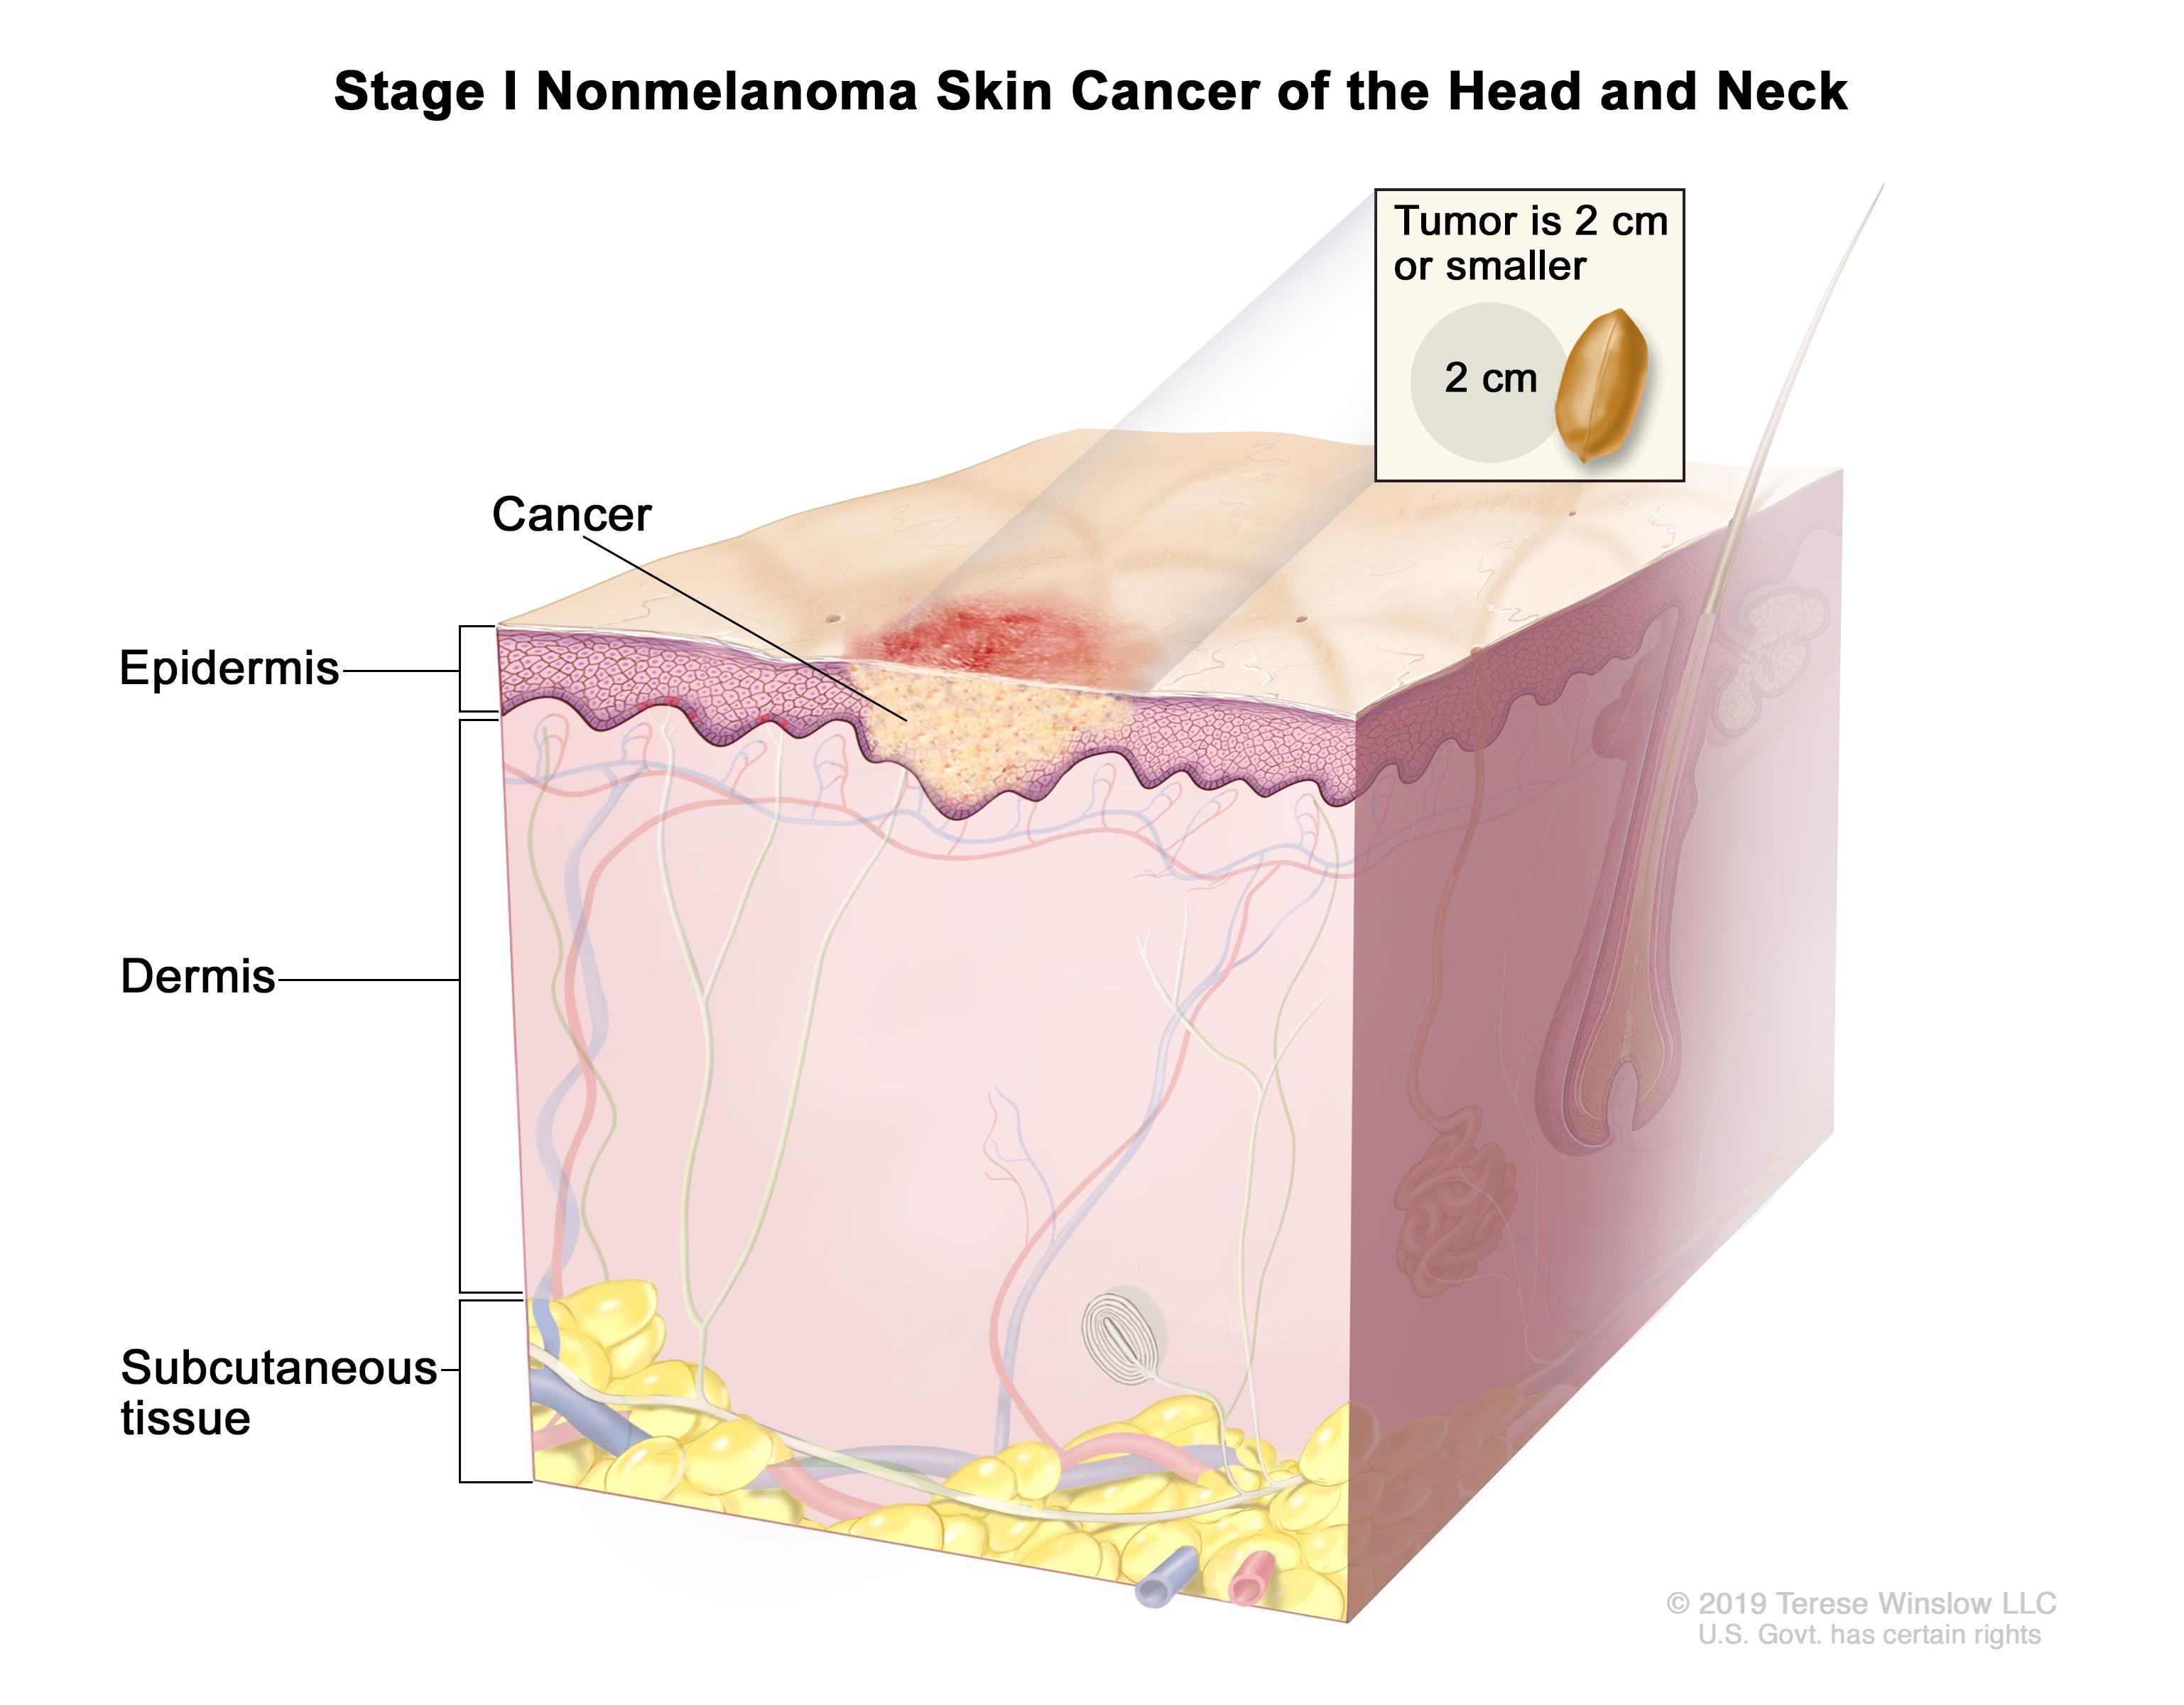 treatment of cancer There have been several studies of people who have refused scientific treatments for cancer the results have not been good.